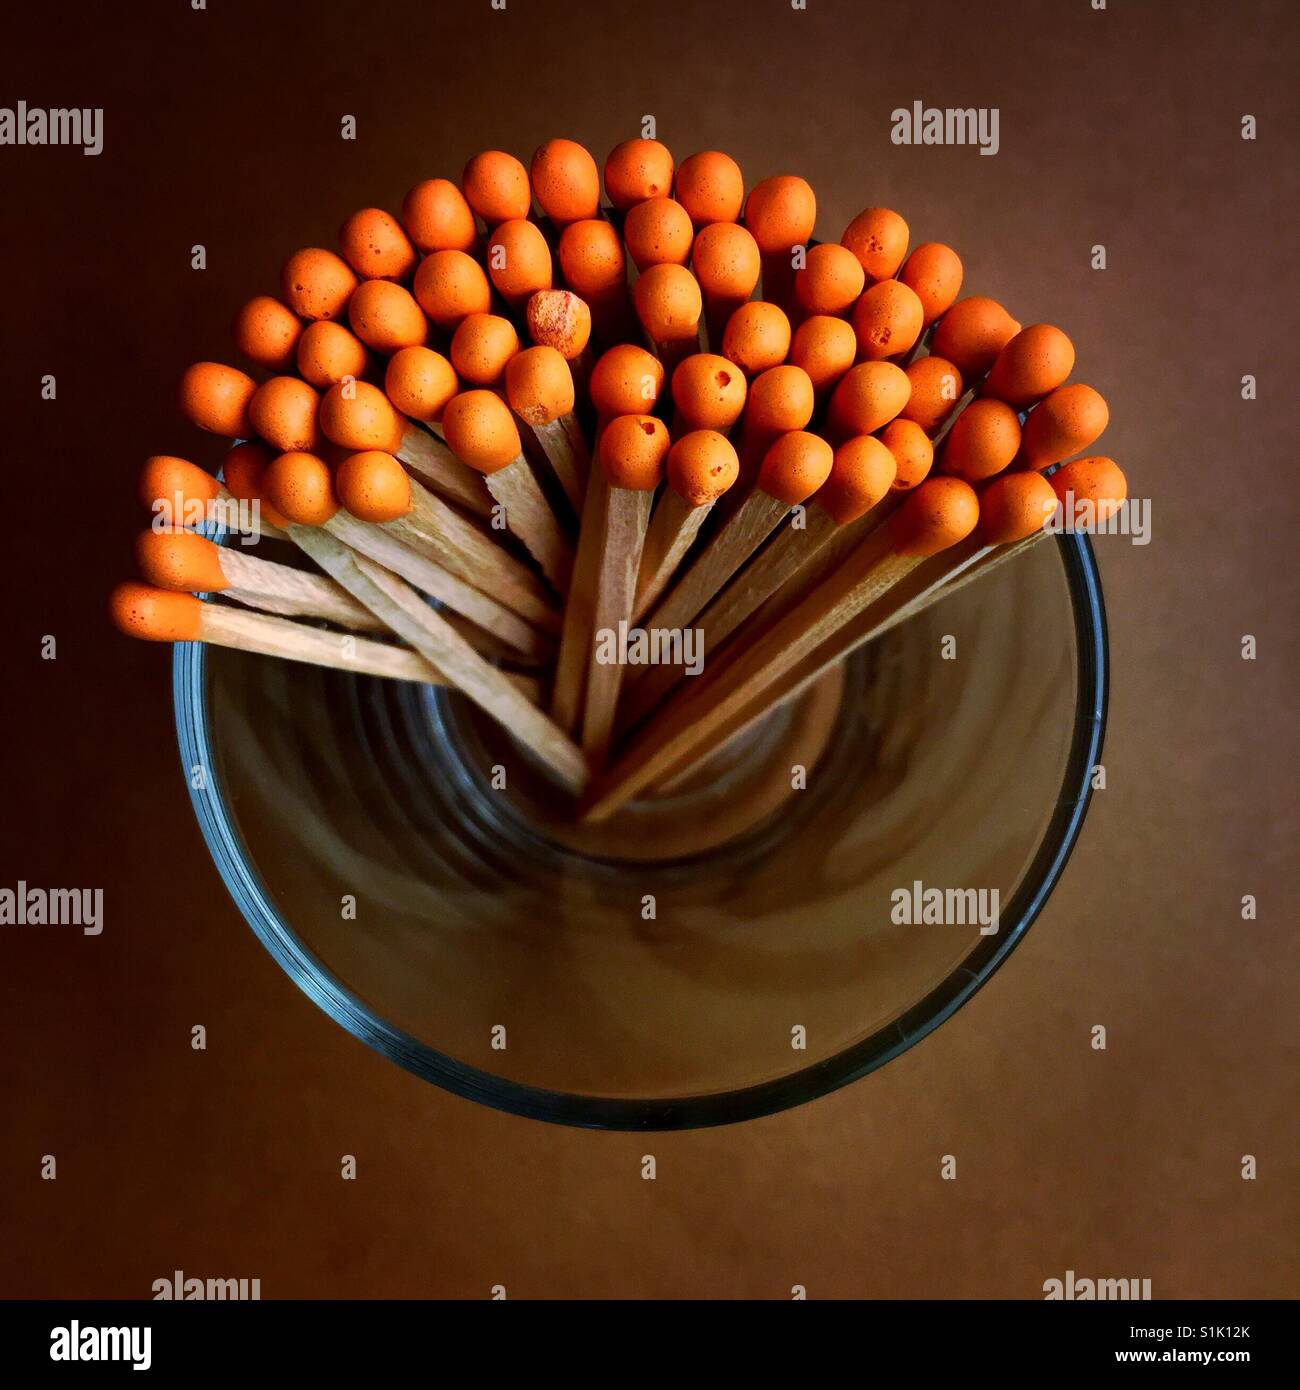 An overhead shot of a bunch of orange tipped matchsticks in a glass container - Stock Image